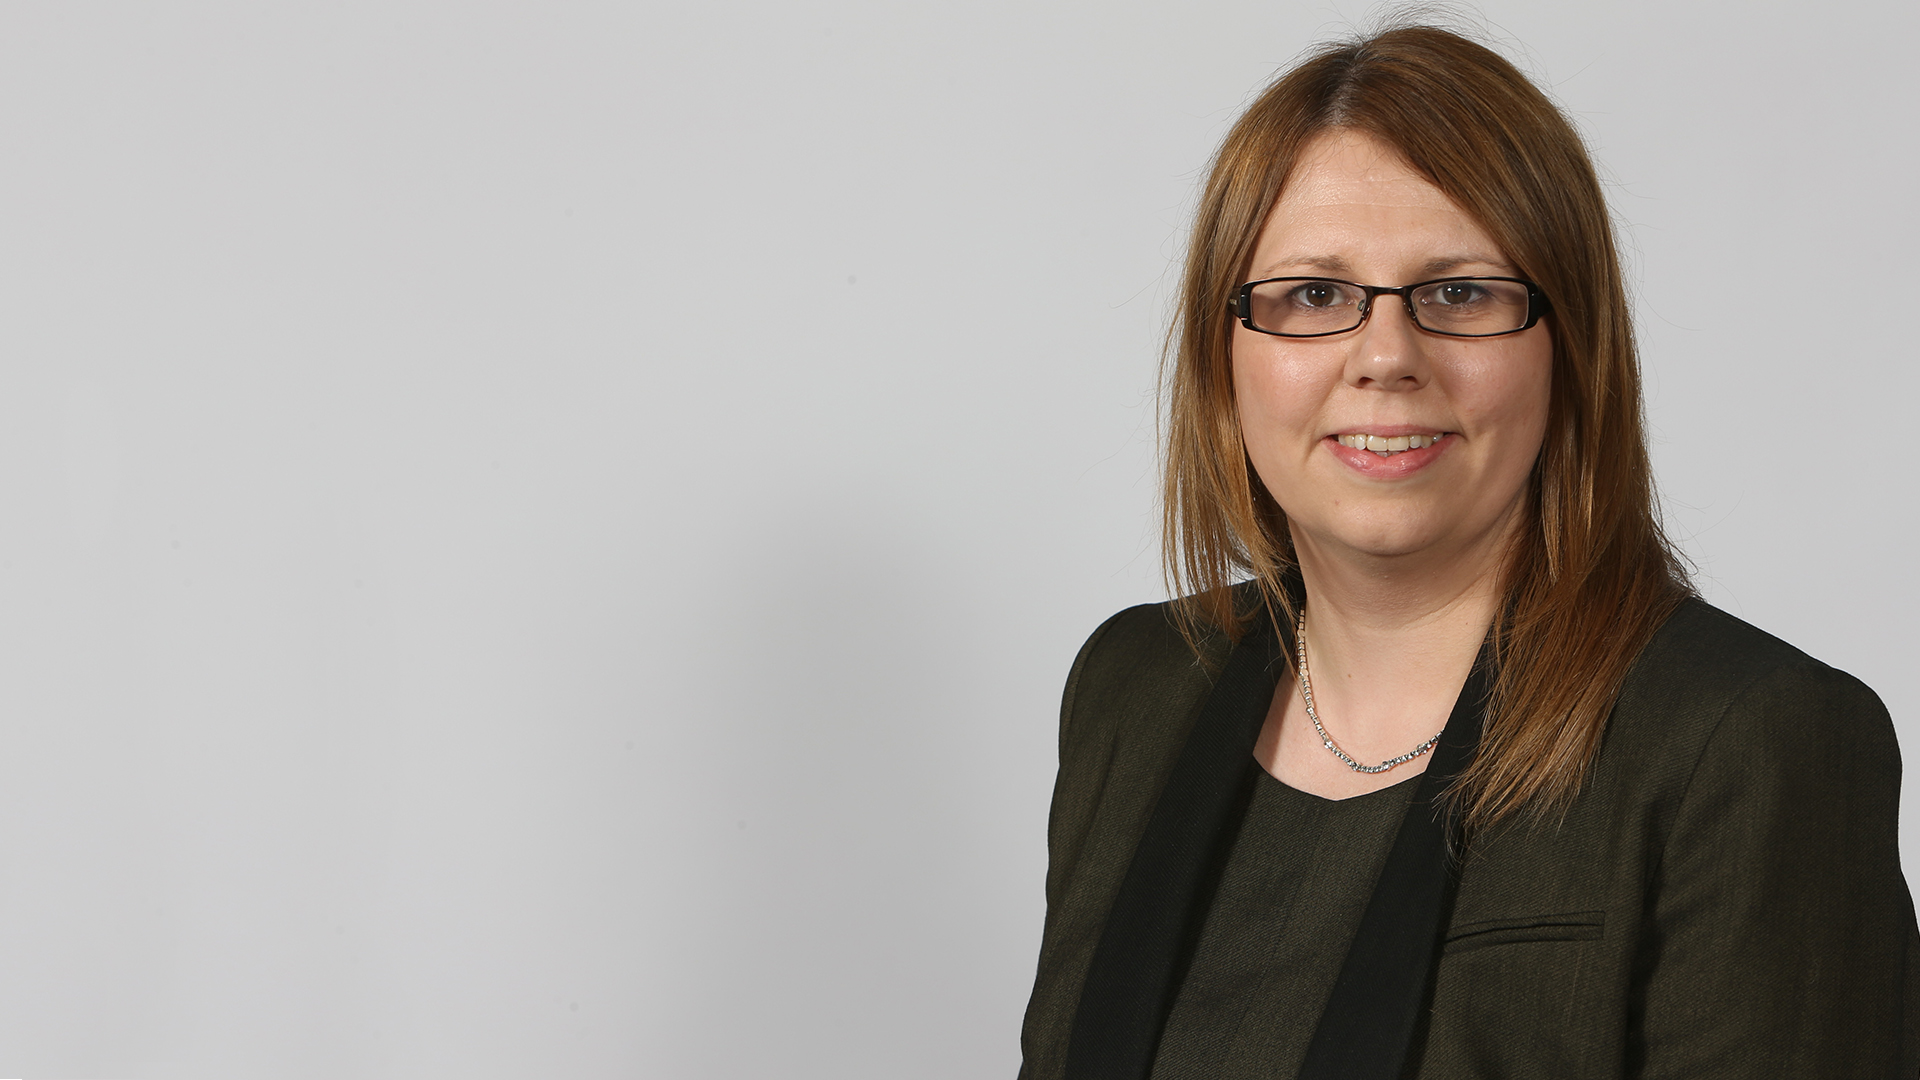 Joanne Raisbeck Promoted to Lead Family Law Team